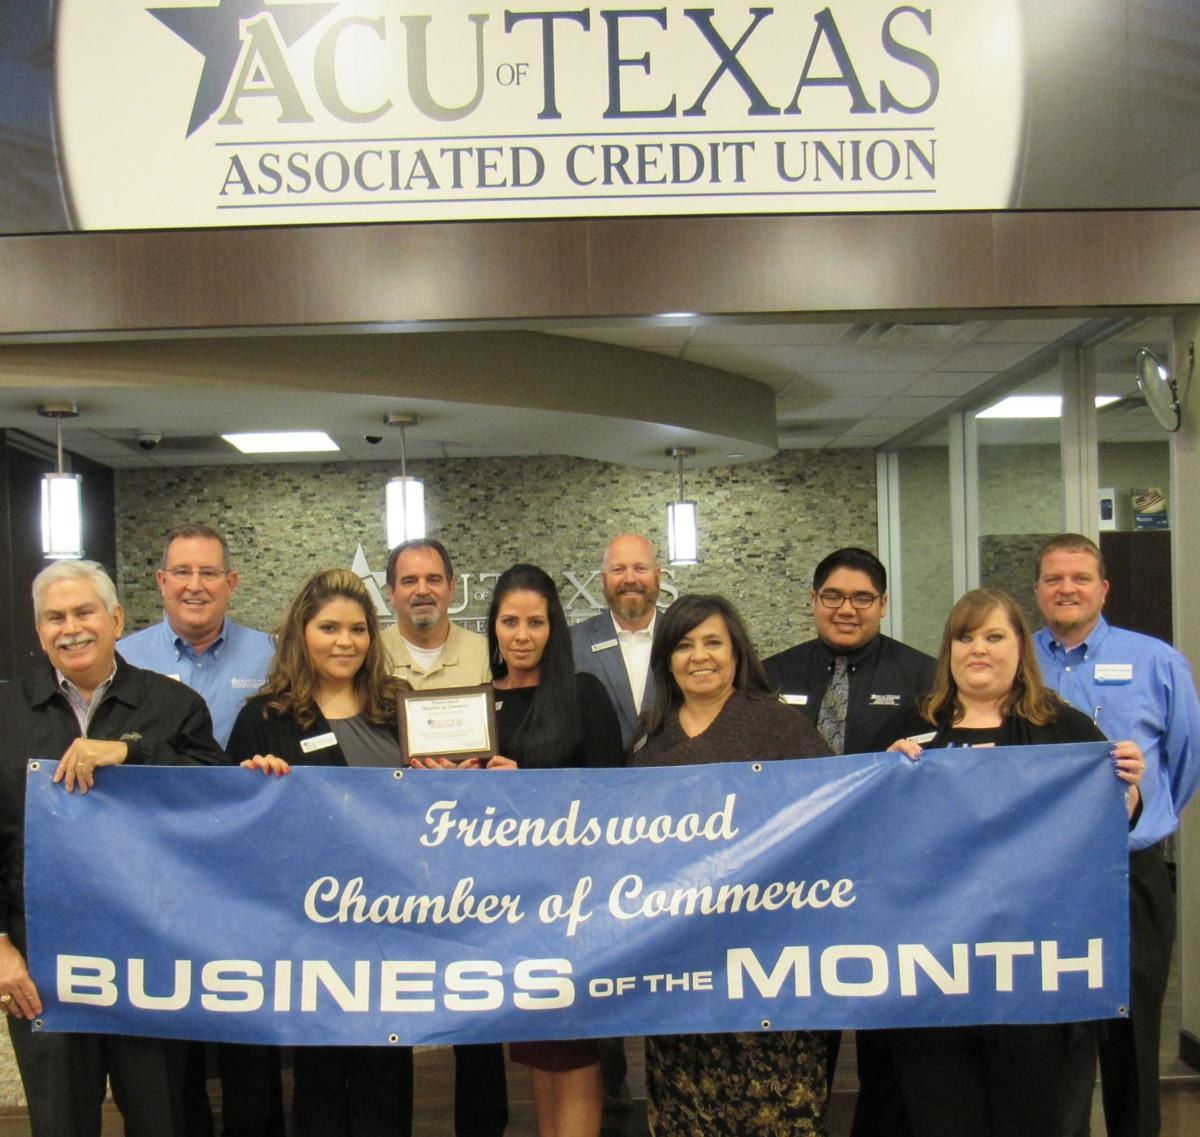 ACU Texas named business of the month